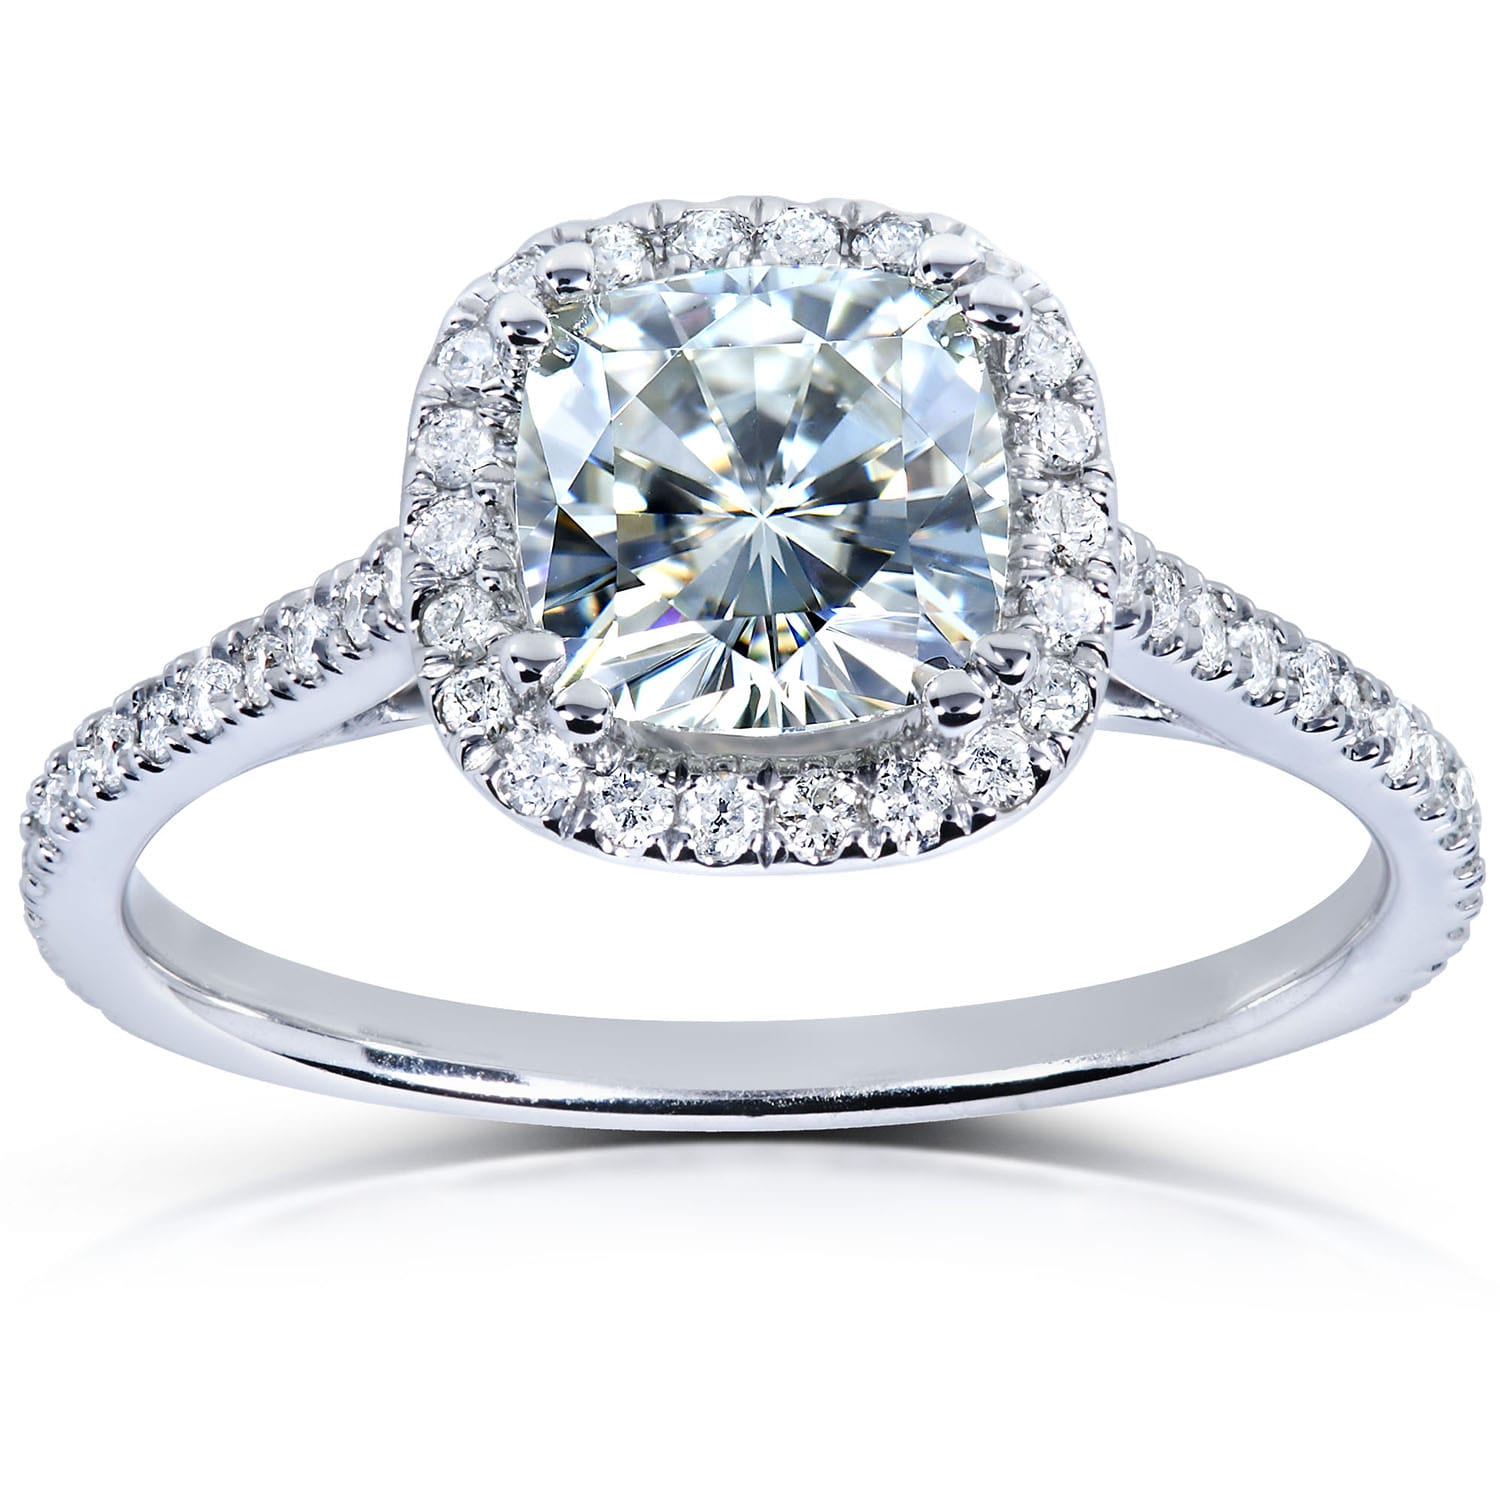 diamonds marquise douglas gemstone marquis david product foreverone moissanite and jewelry